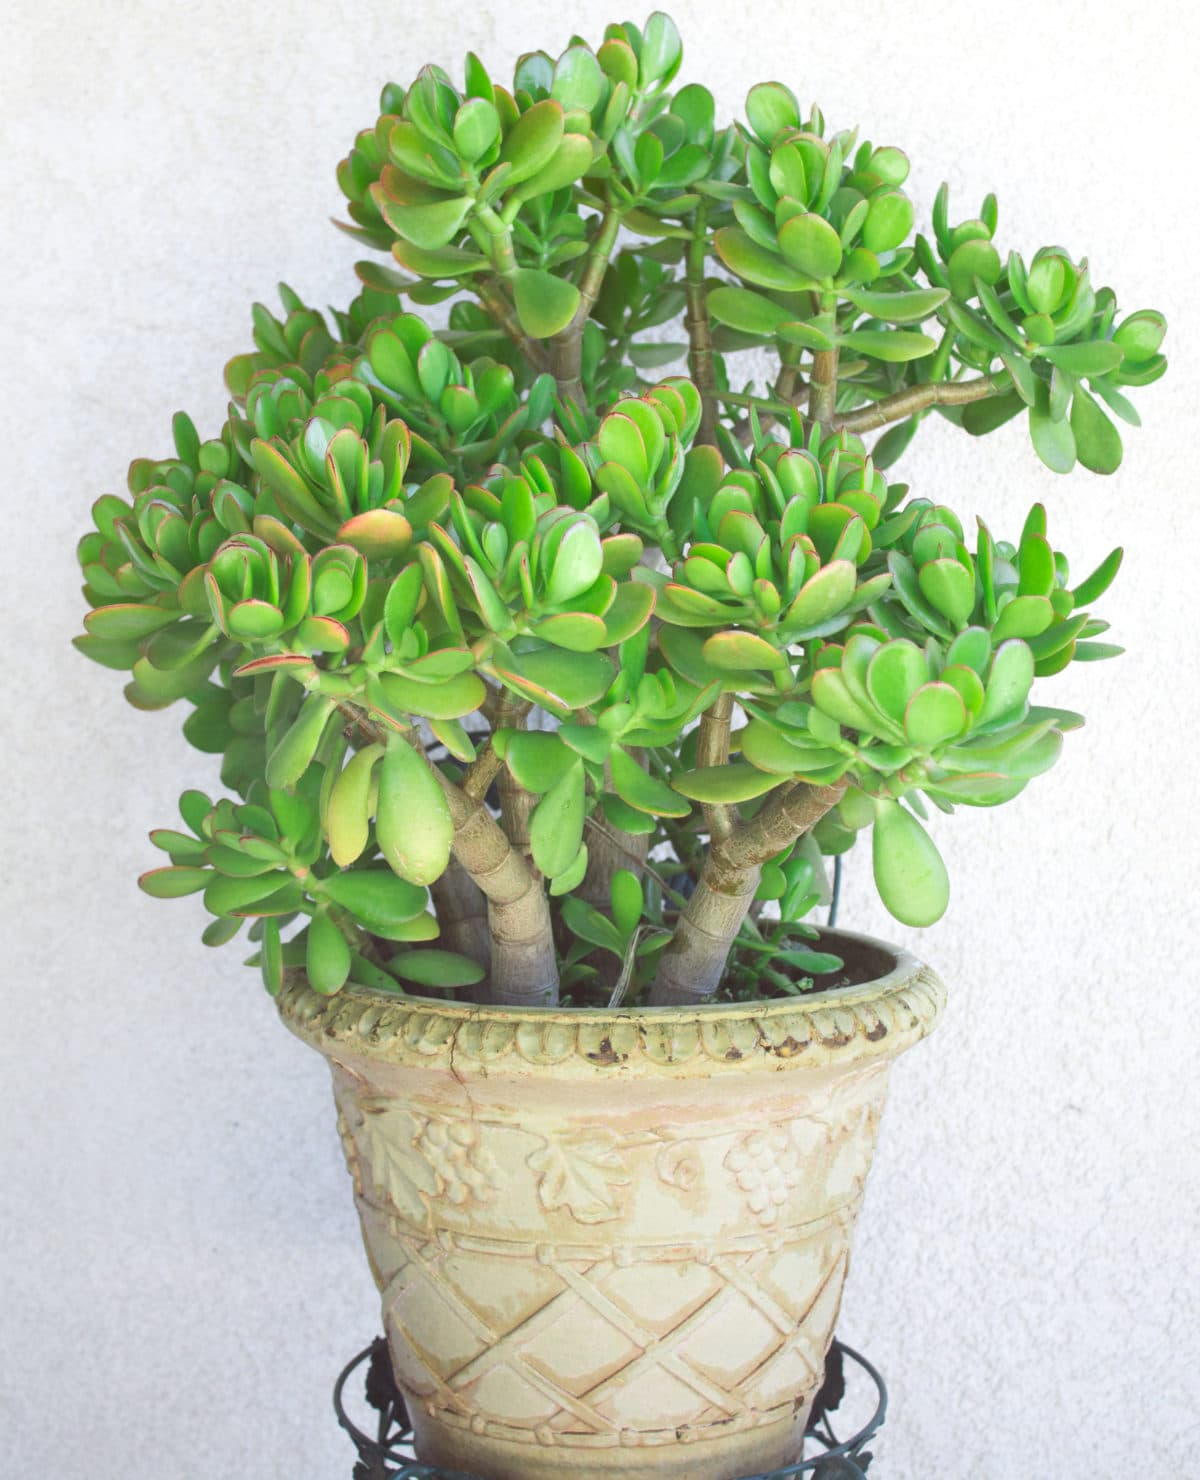 Learn how to water succulents with these easy tips!